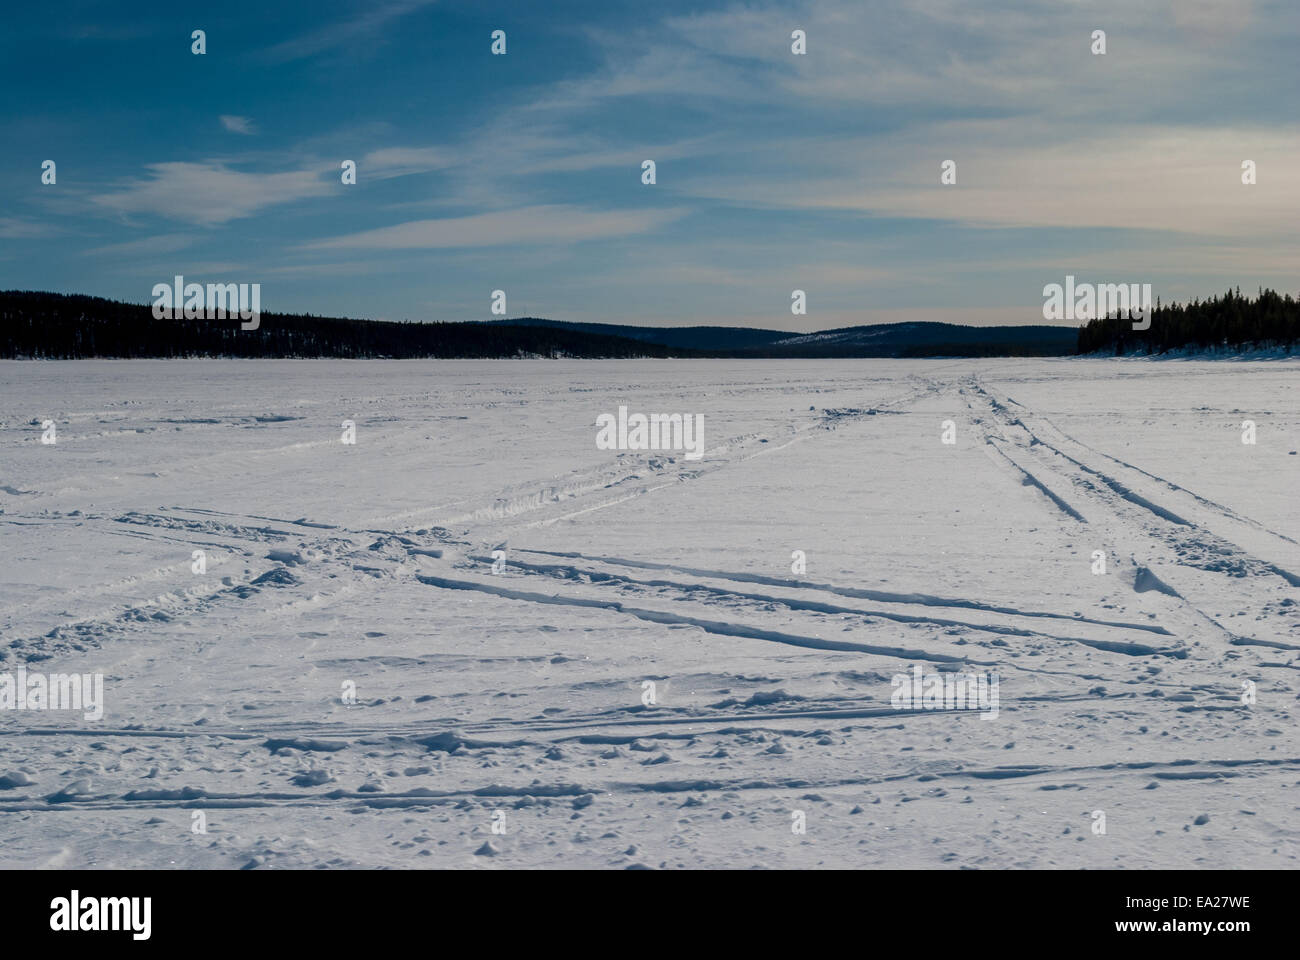 Winter wilderness crossed by snowmobile tracks - Stock Image